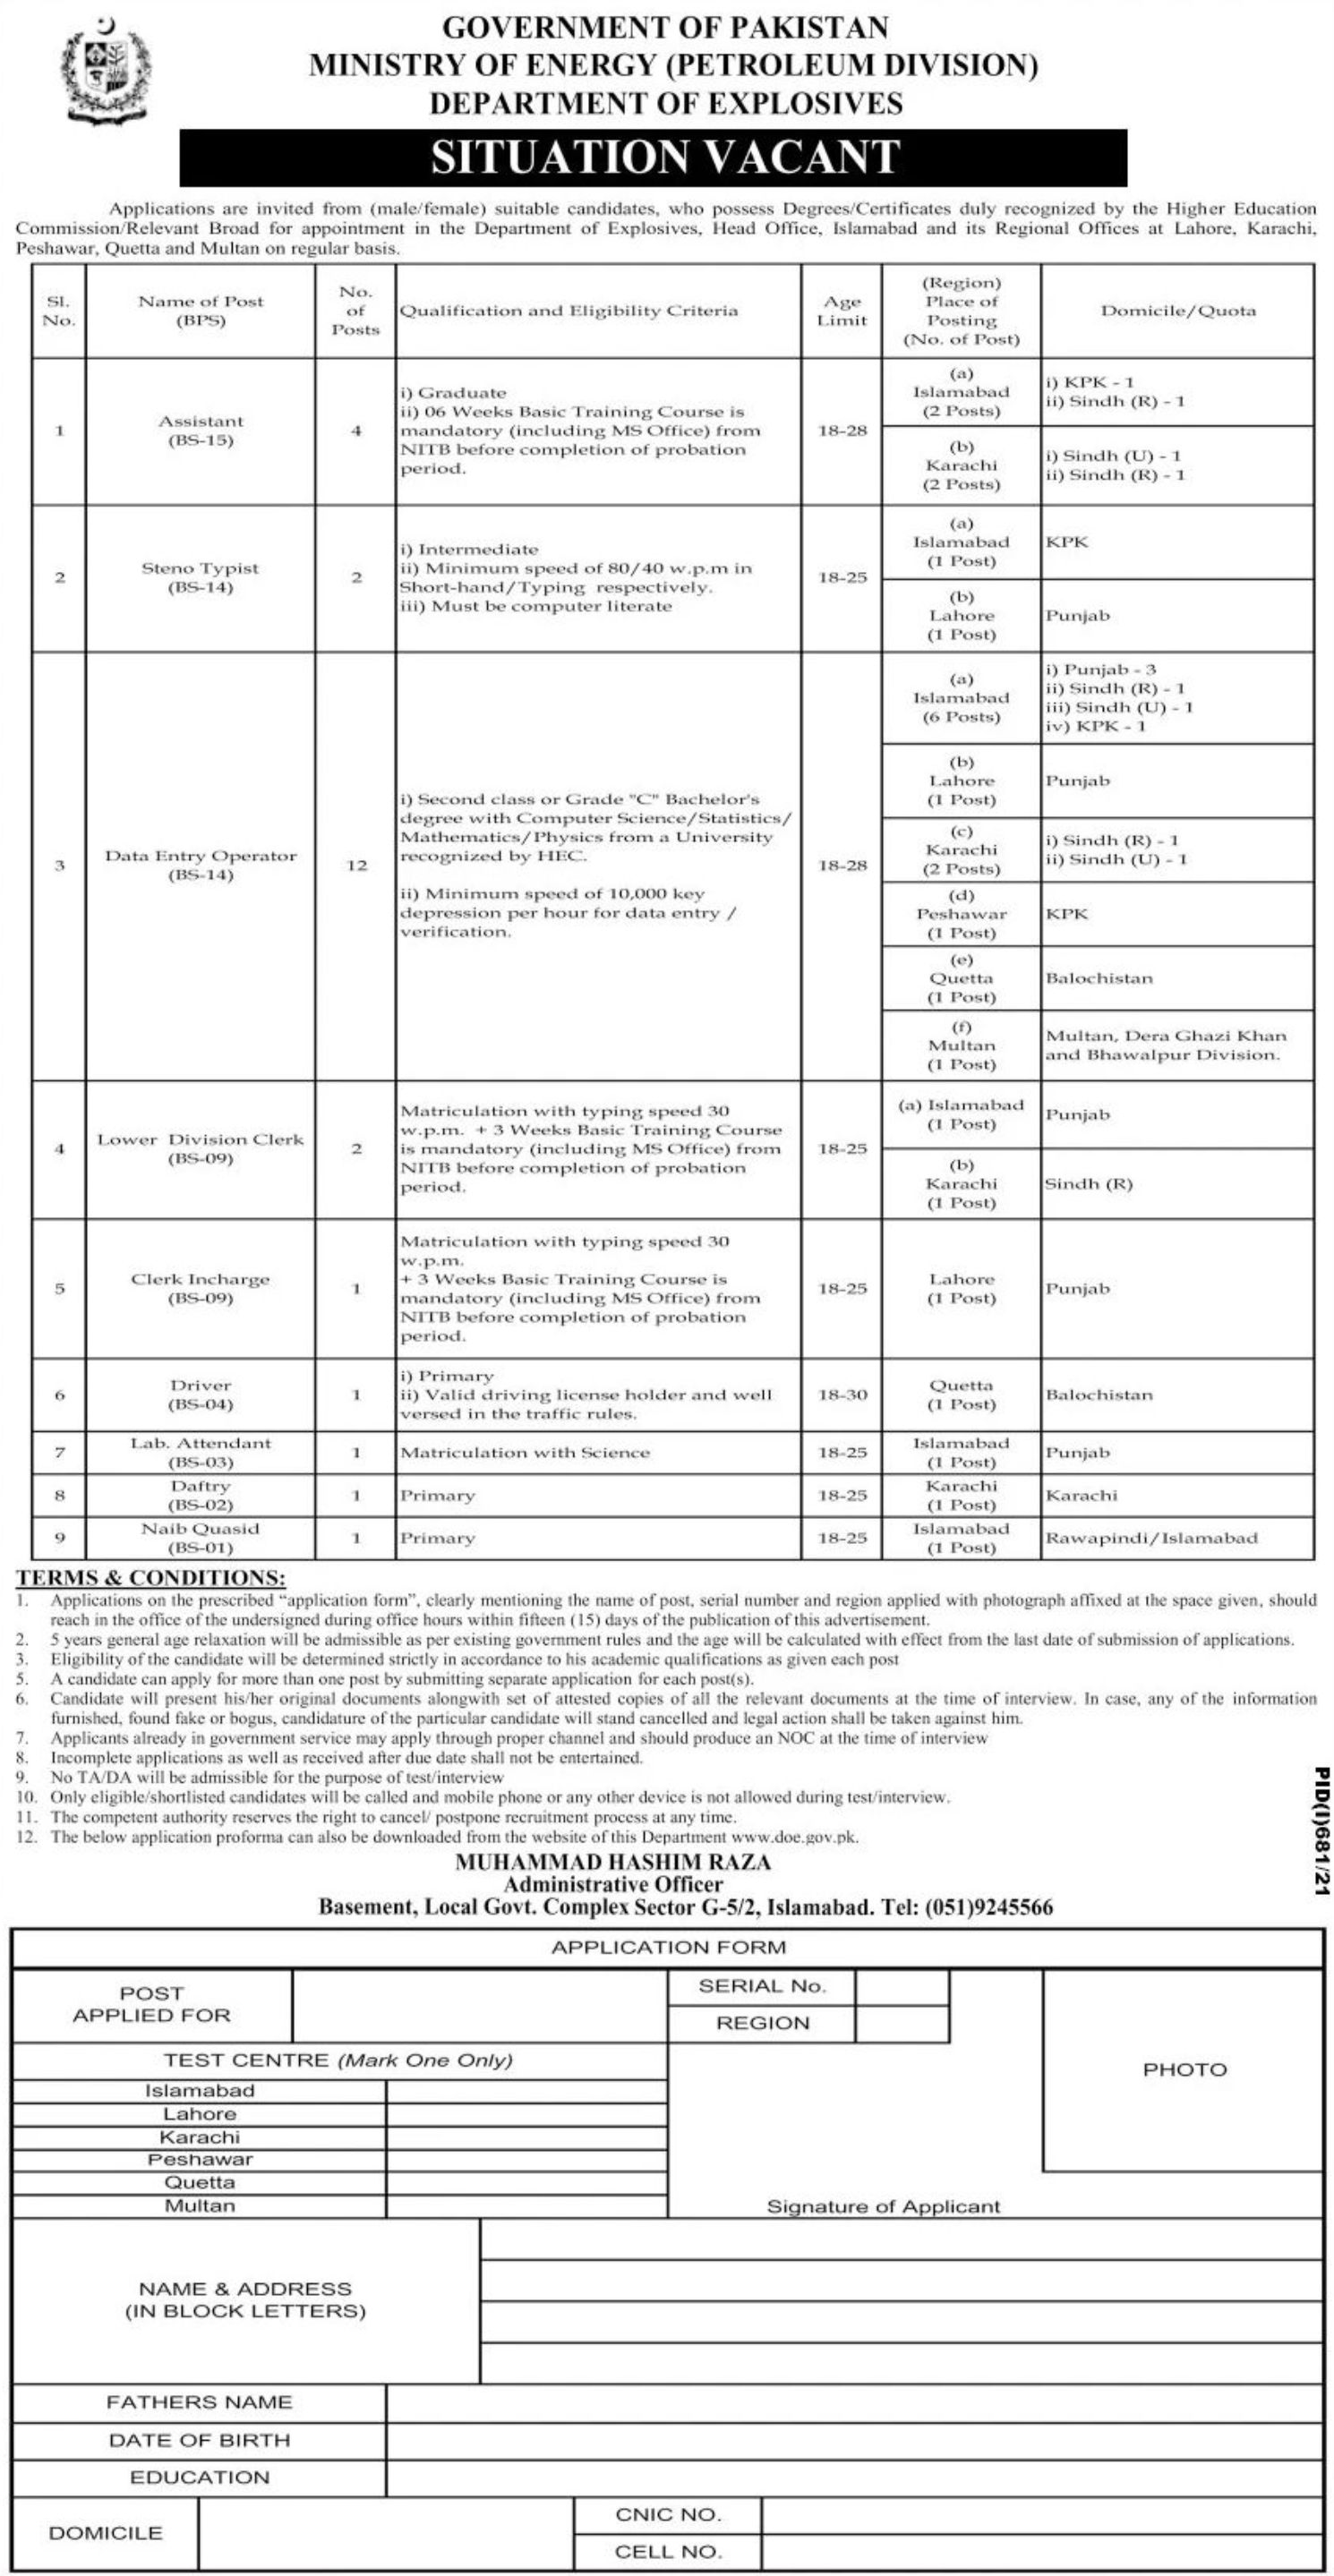 Government of Pakistan Ministry of Energy Petroleum Division Vacancies 2021 3